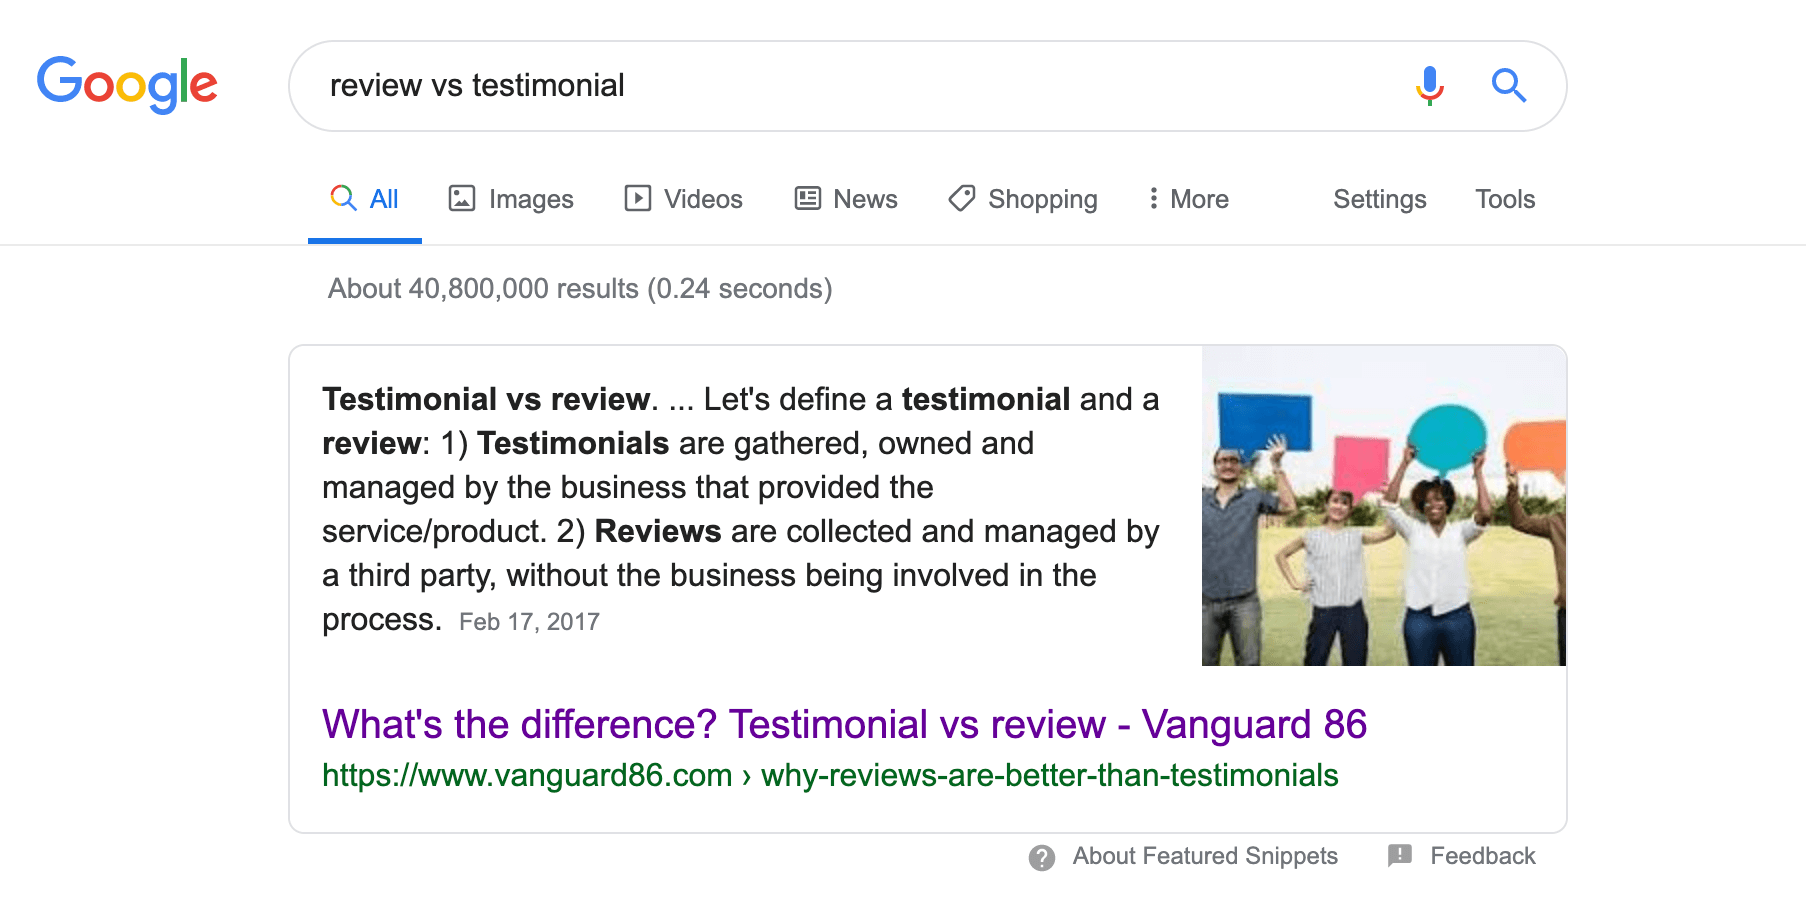 Vanguard 86 featured snippet